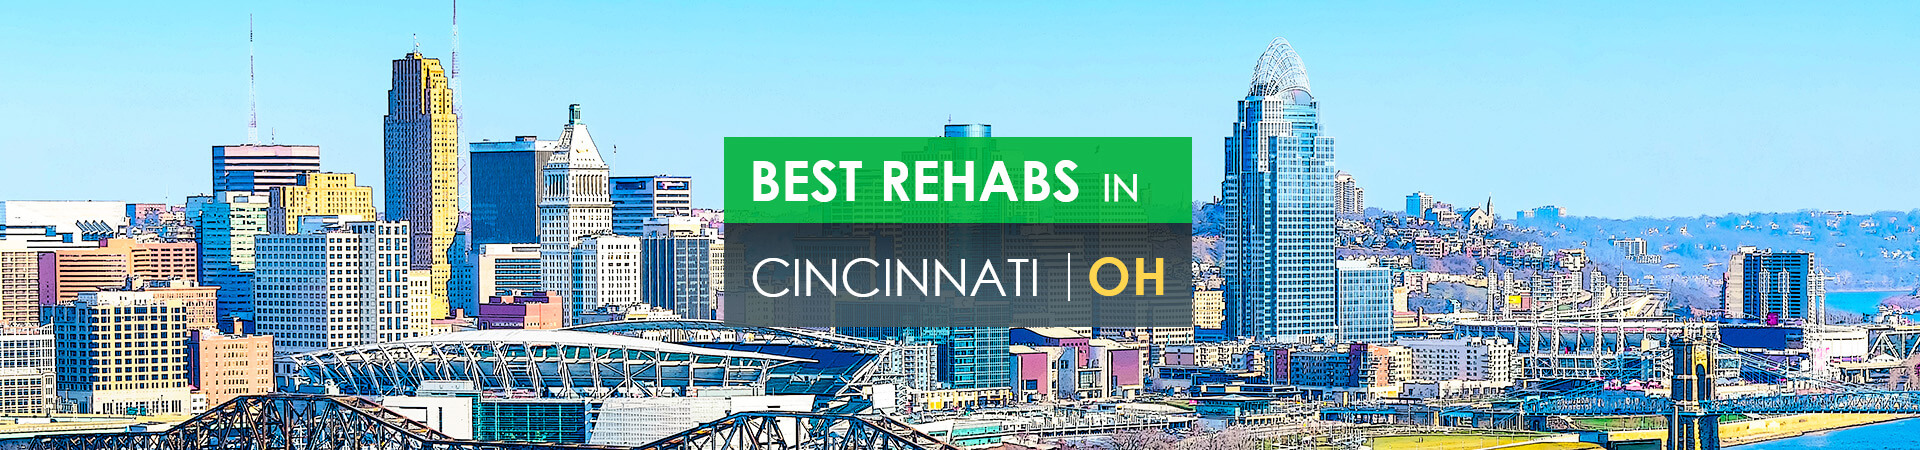 Best rehabs in Cincinnati, OH